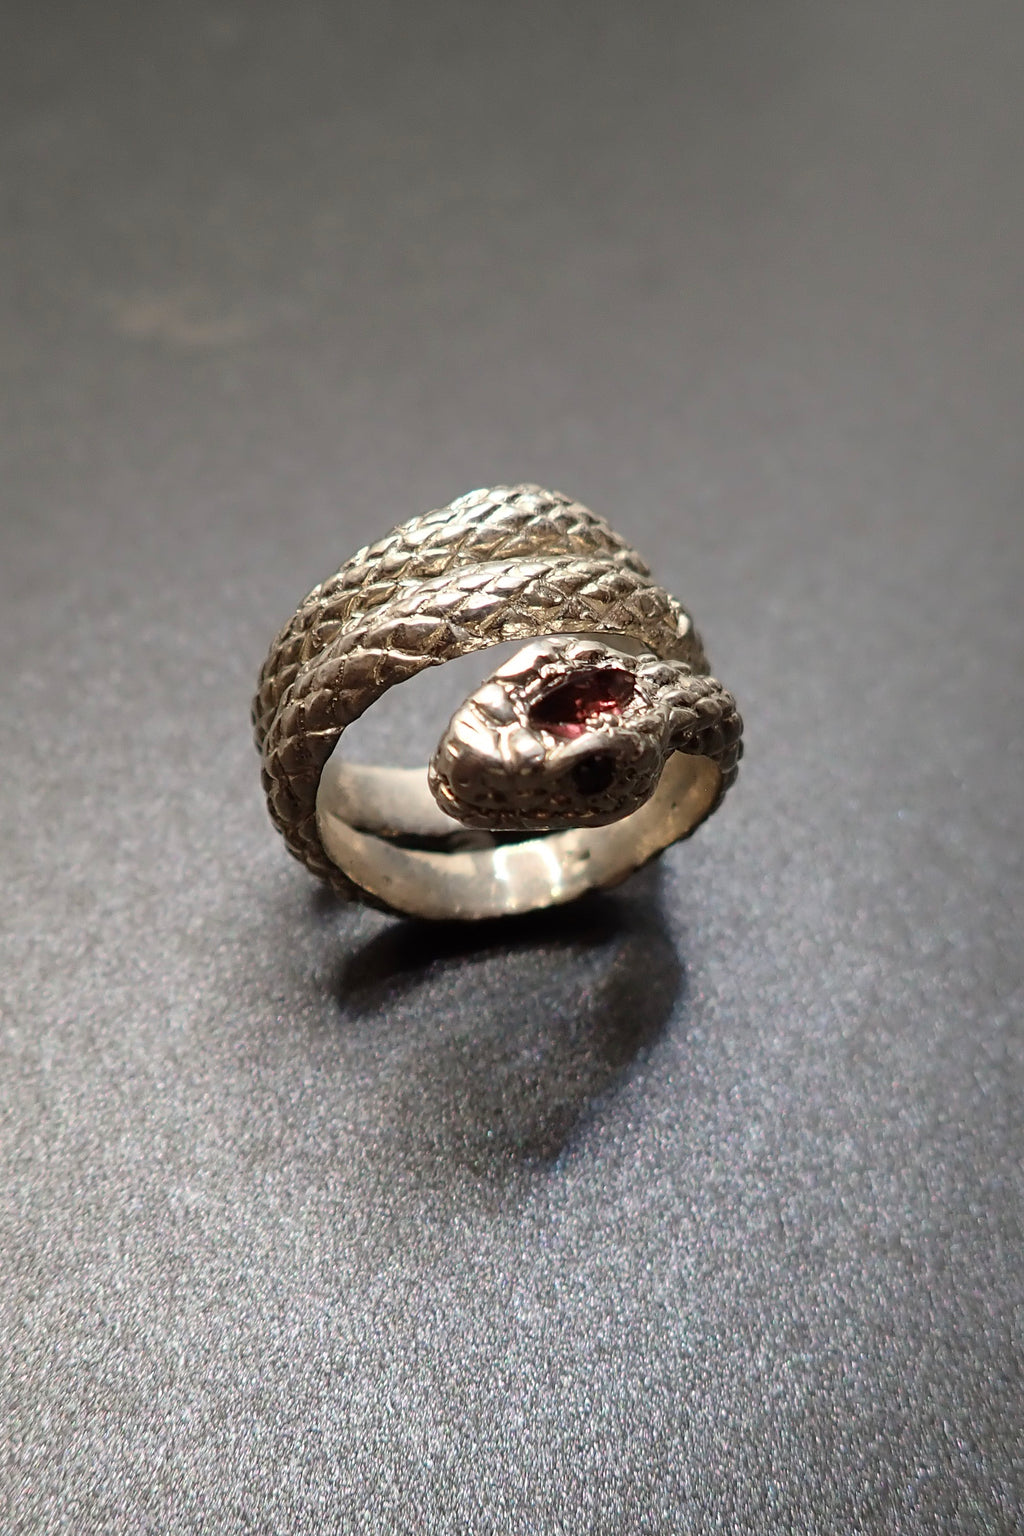 SILVER SNAKE RING - DIAMONDS & GARNET